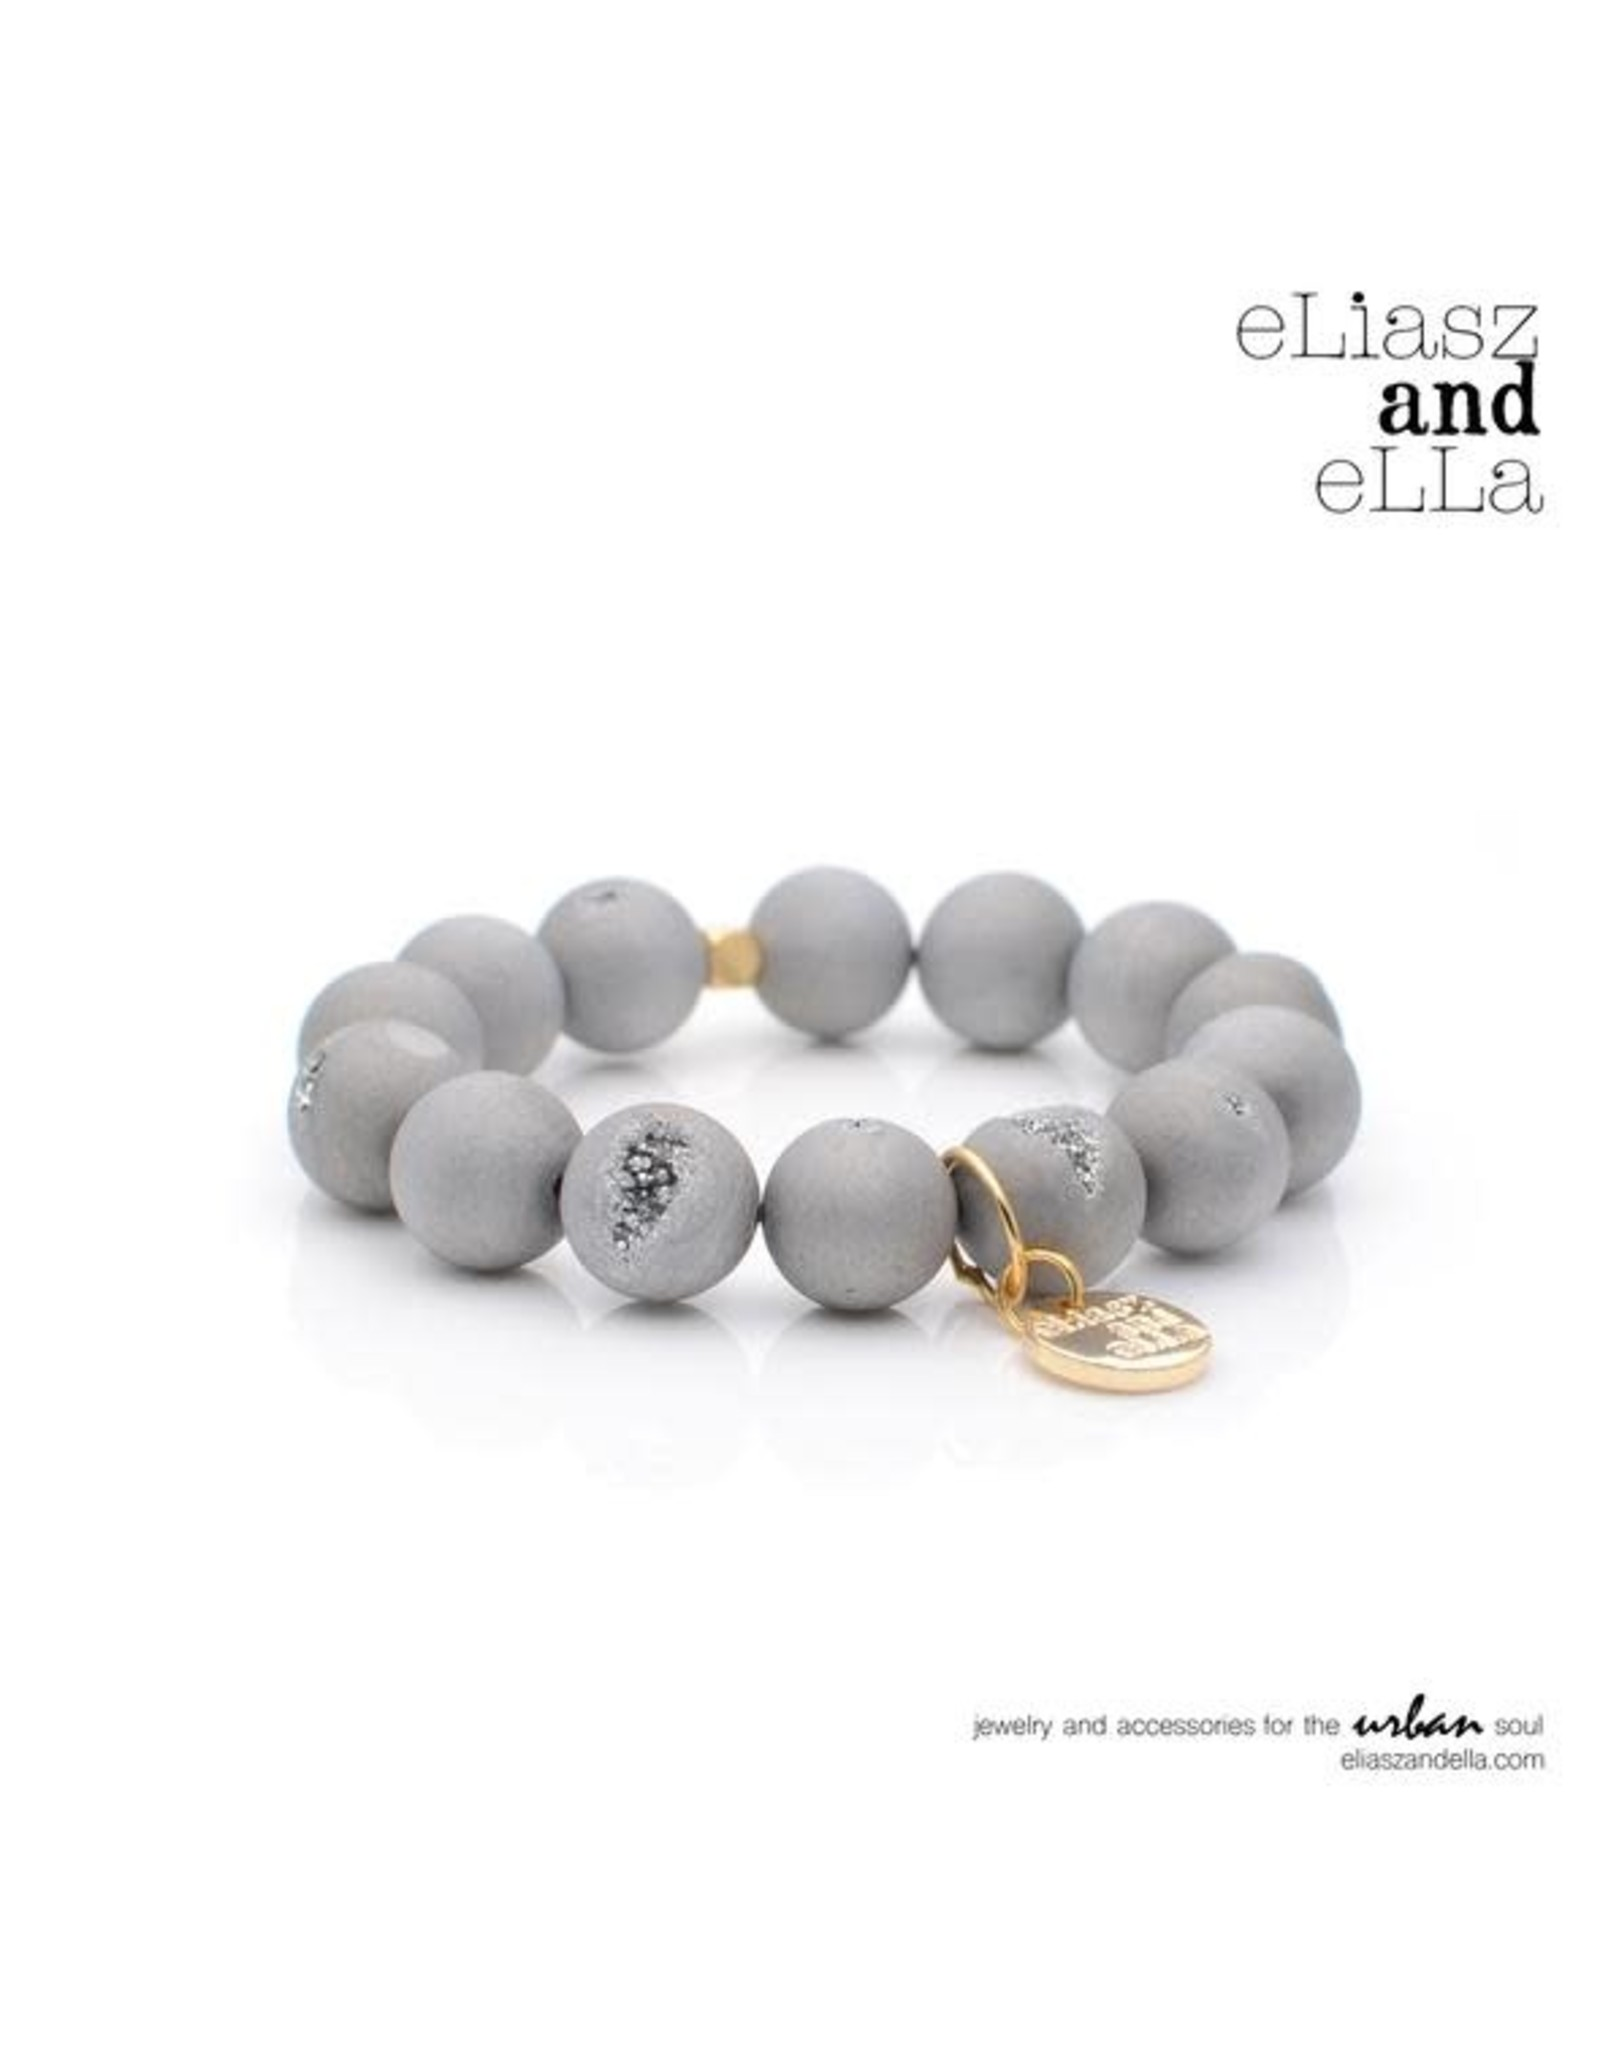 """eLiasz and eLLa """"Silver and Gold"""" Limited Edition Bangin' Bracelet"""